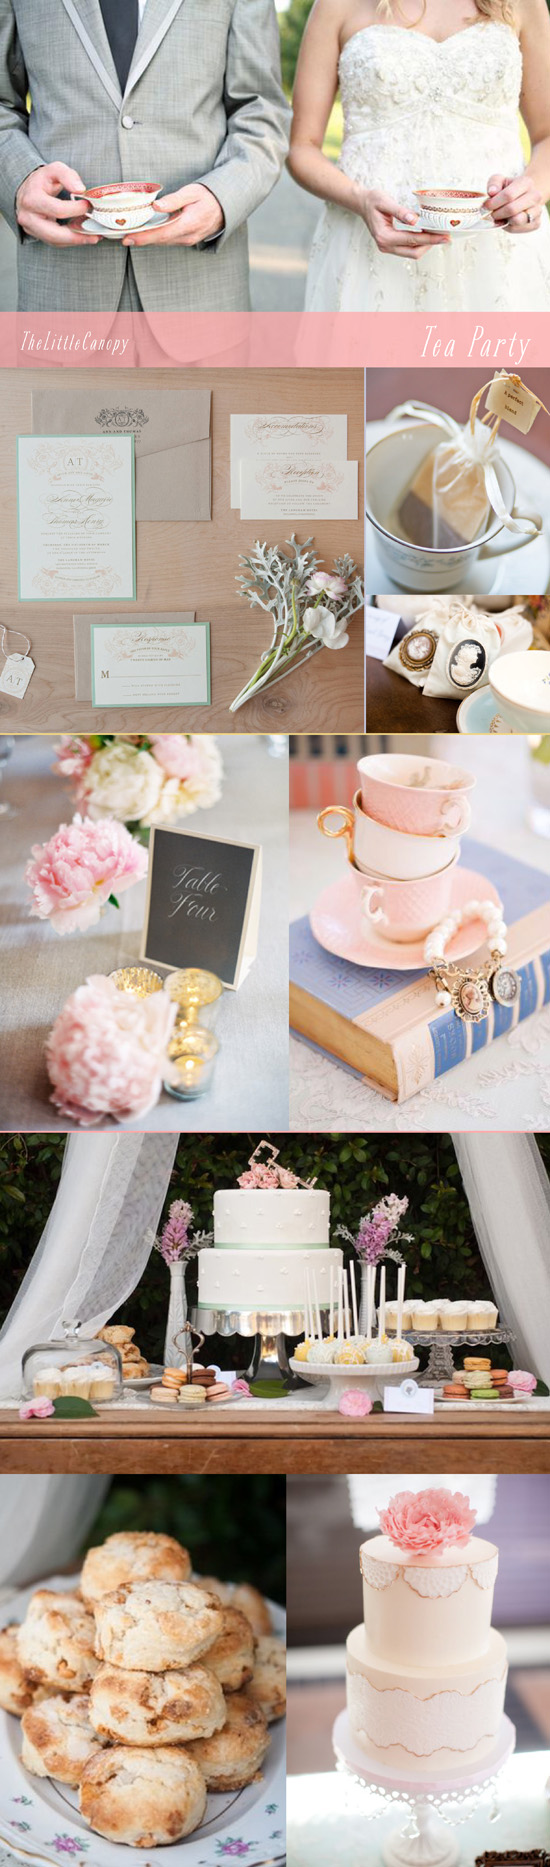 inspiration board for a tea party theme wedding or bridal shower event